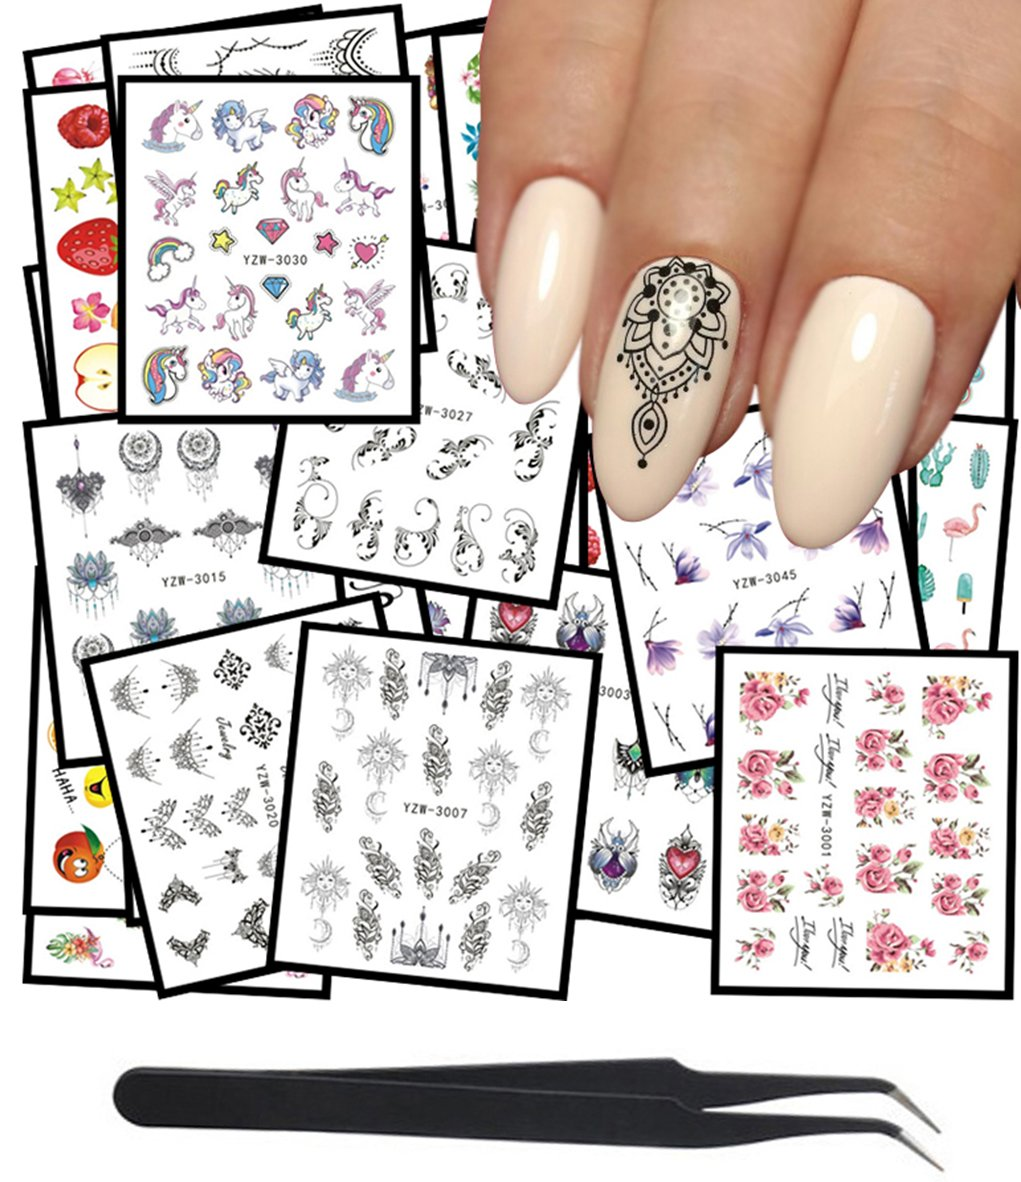 WOKOTO 48Pcs Nail Water Decals Feather Flower Lace Butterfly Cartoon Water Transfer Stickers For Nails Art Design With Nail Tweezers